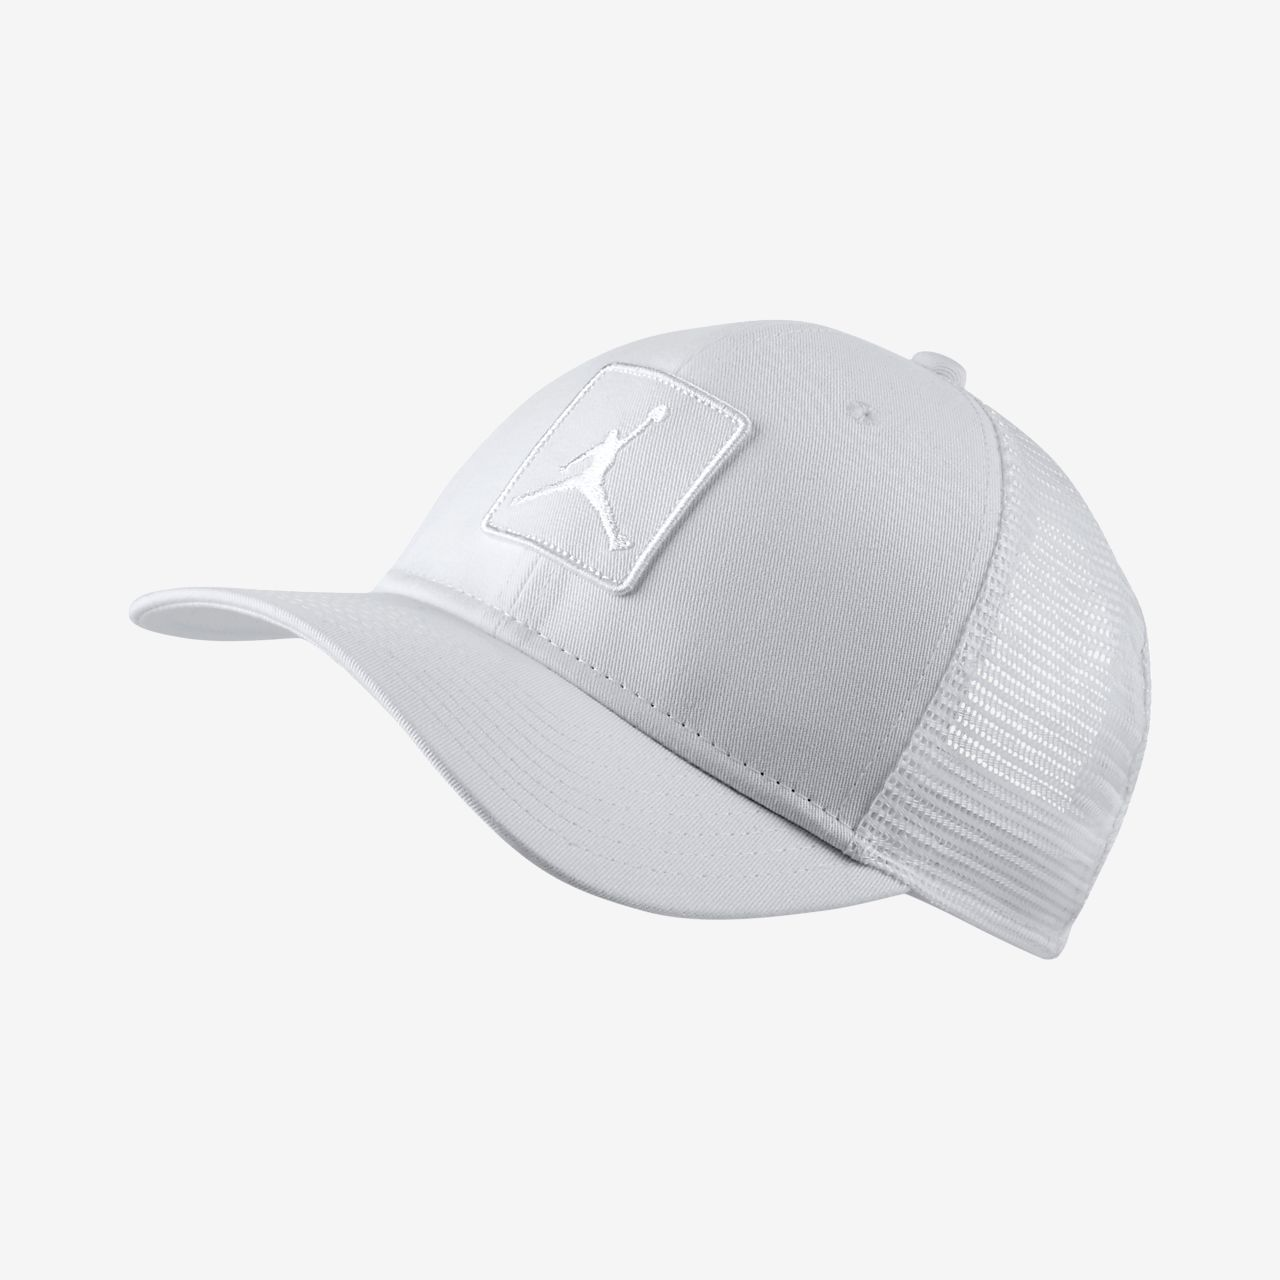 5900e2cba7c9c inexpensive jordan jumpman classic99 trucker adjustable hat 11489 c50ad